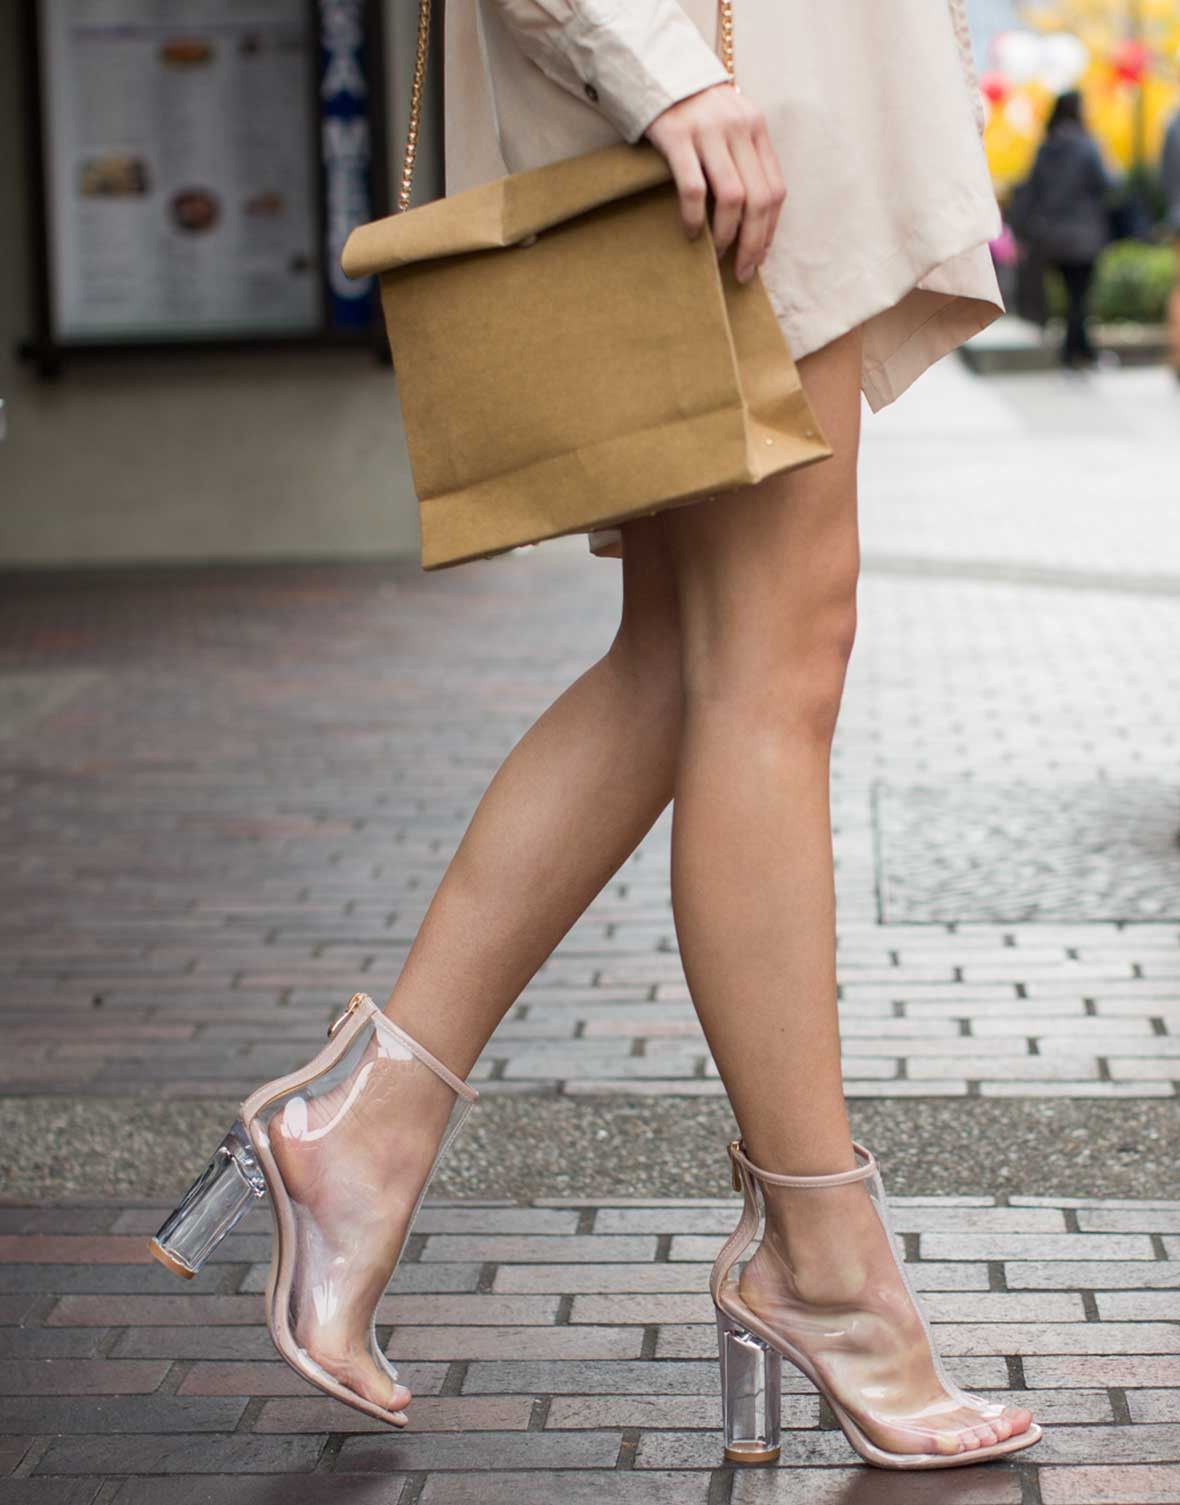 676a0c6fd19 Peep Toe Clear Heel Boots | Street Style Outfits | Clear heels ...